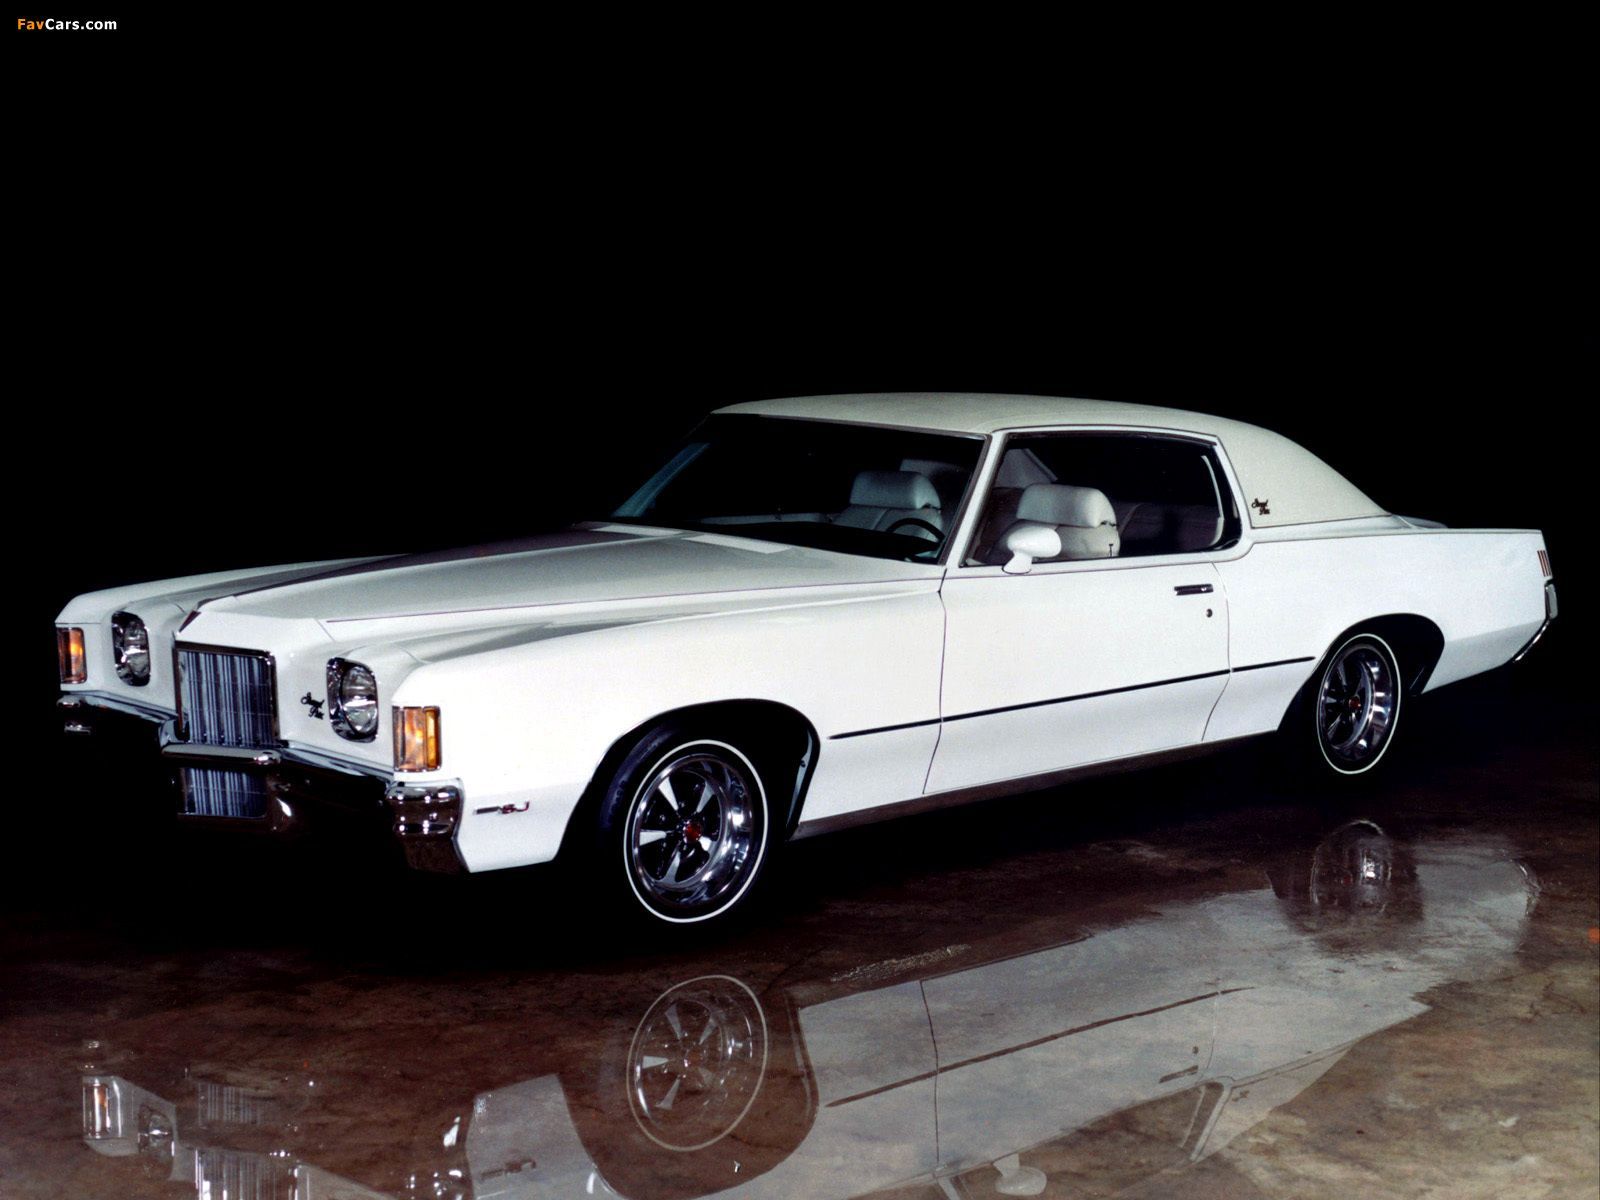 1972 Pontiac Grand Prix The material which I can produce is